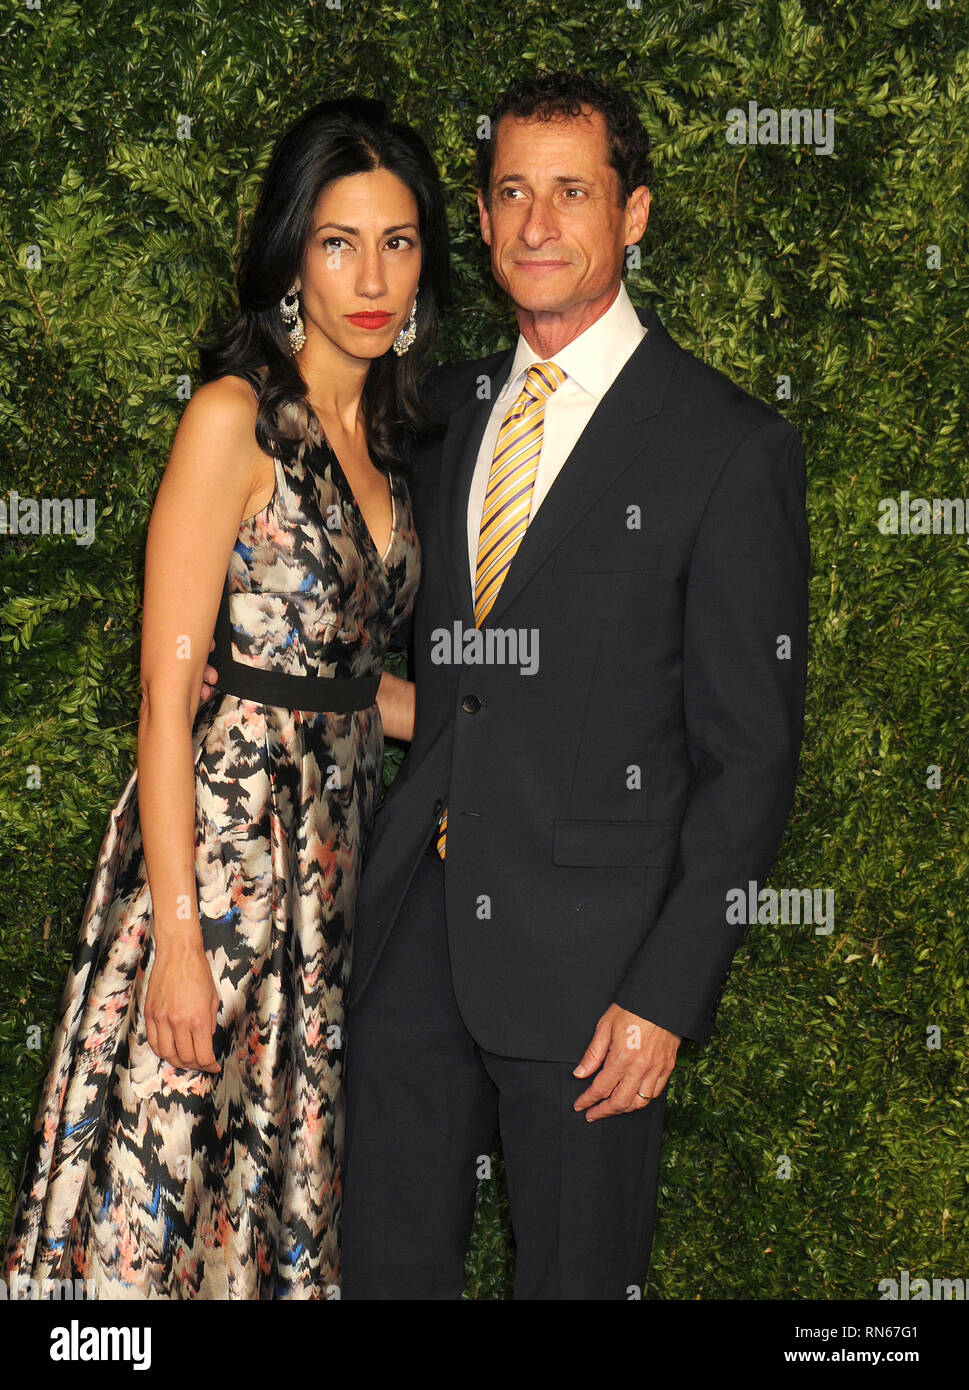 ***FILE PHOTO*** Anthony Weiner Out Of Prison Early After Pleading Guilty to Sexting 15 Year Old NEW YORK, NY - NOVEMBER 02: Huma Abedin, Anthony Weiner attends the 12th annual CFDA/Vogue Fashion Fund Awards at Spring Studios on November 2, 2015 in New York City People: Huma Abedin, Anthony Weiner Transmission Ref: MNC1 MPI122/ MediaPunch Stock Photo